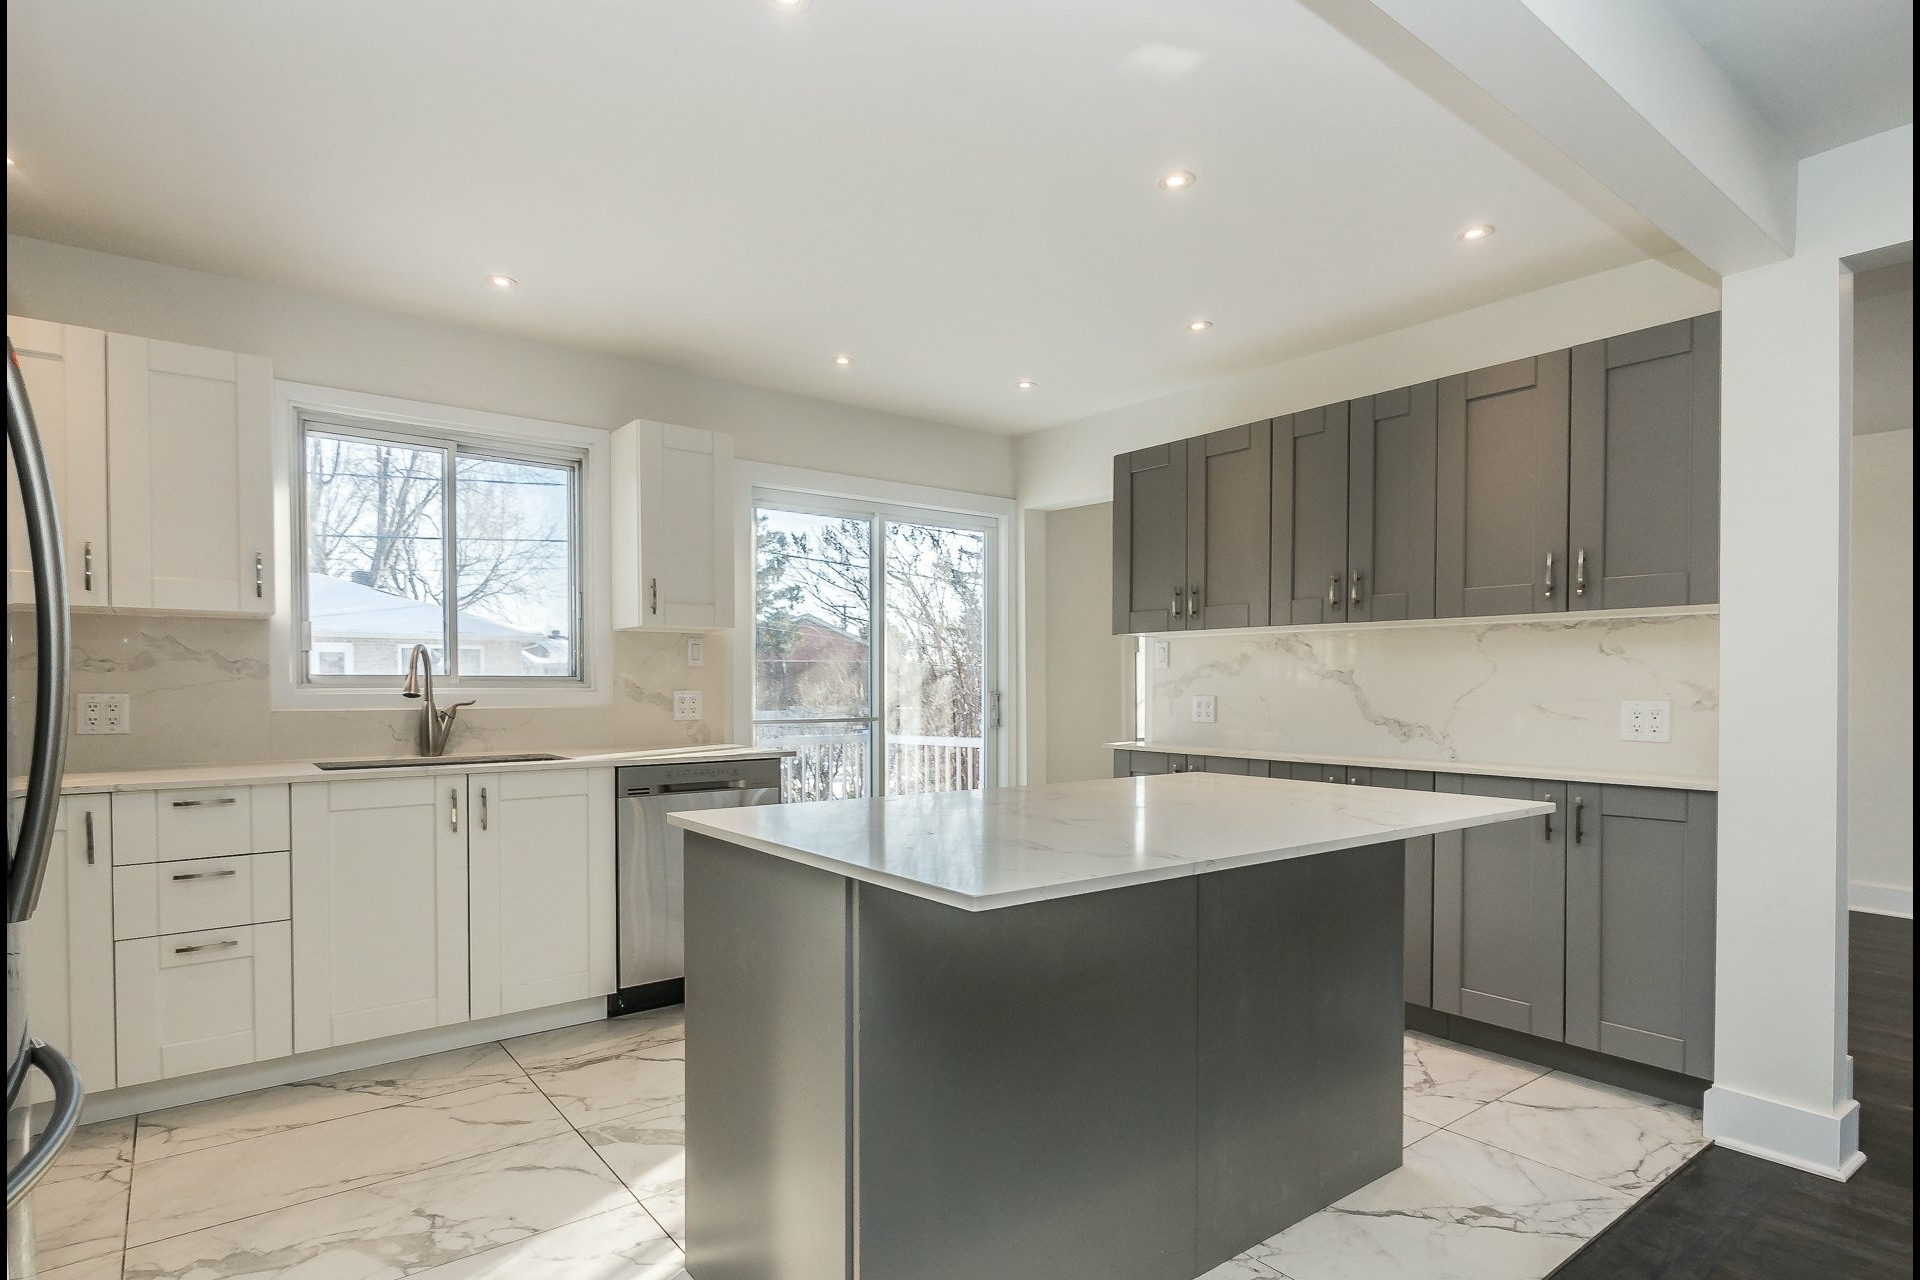 image 9 - House For sale Laval Chomedey  - 9 rooms